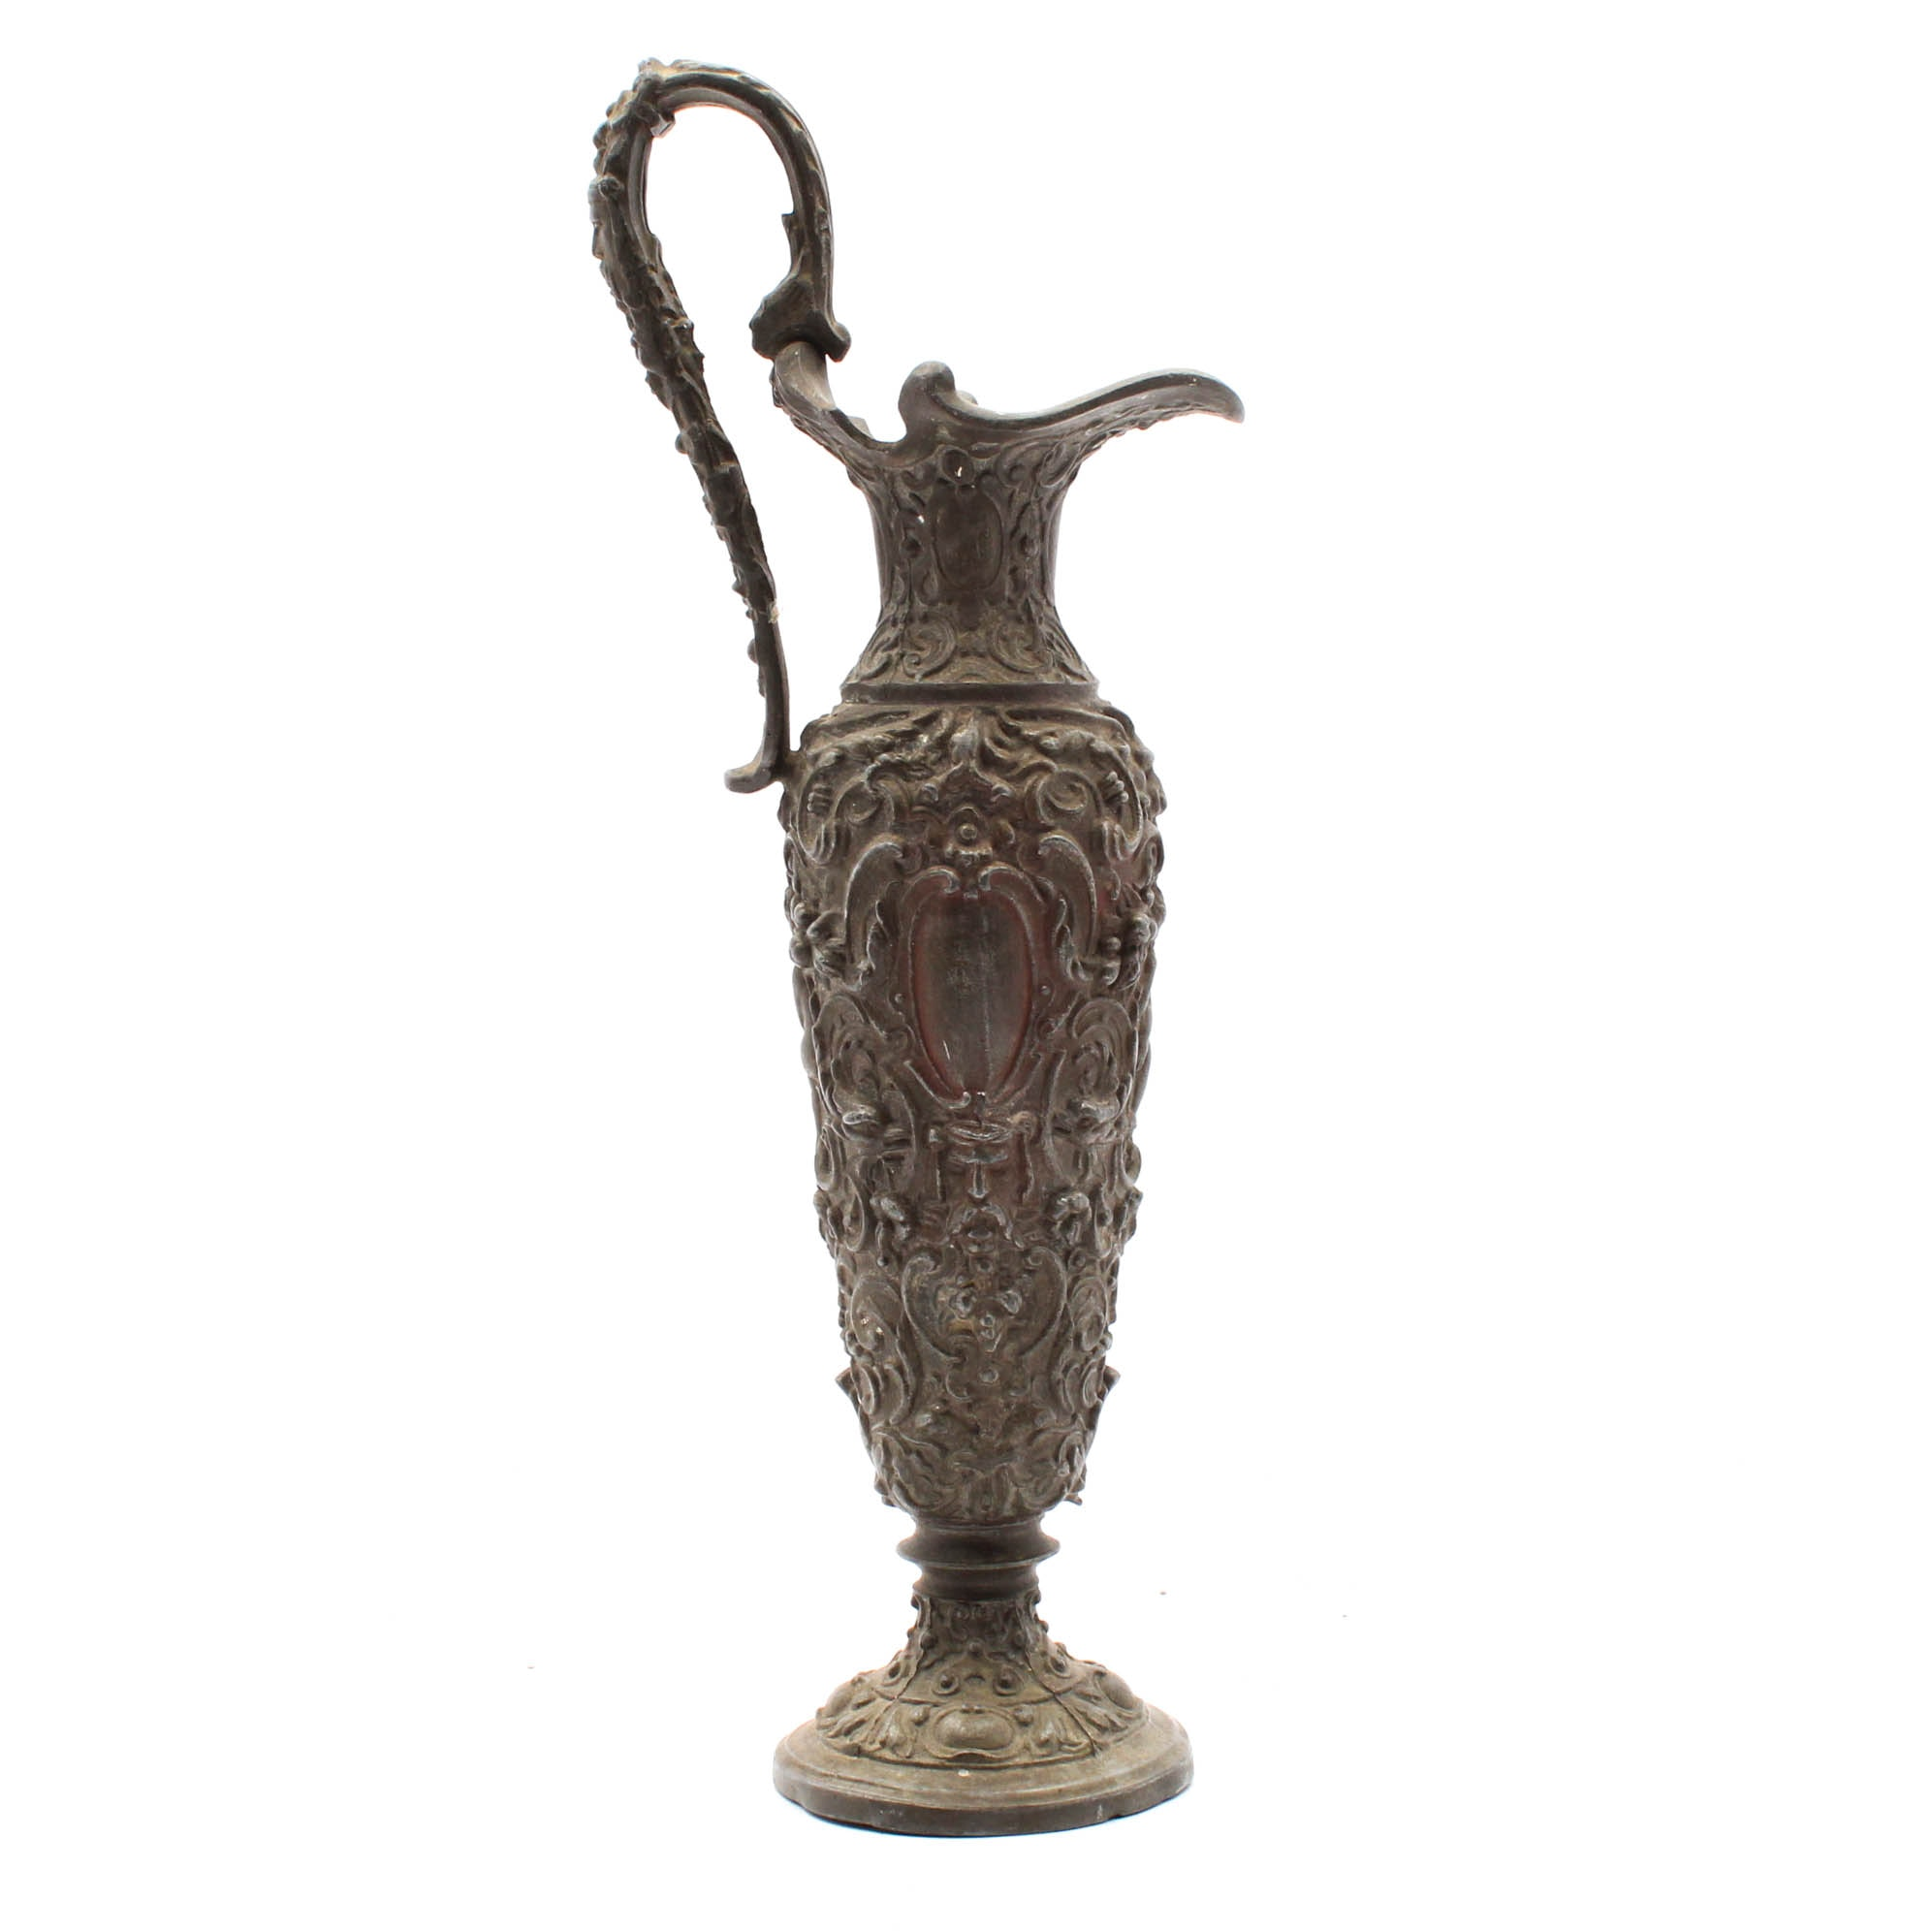 Antique Foliate and Scrolled Decorative Cast Metal Handled Ewer